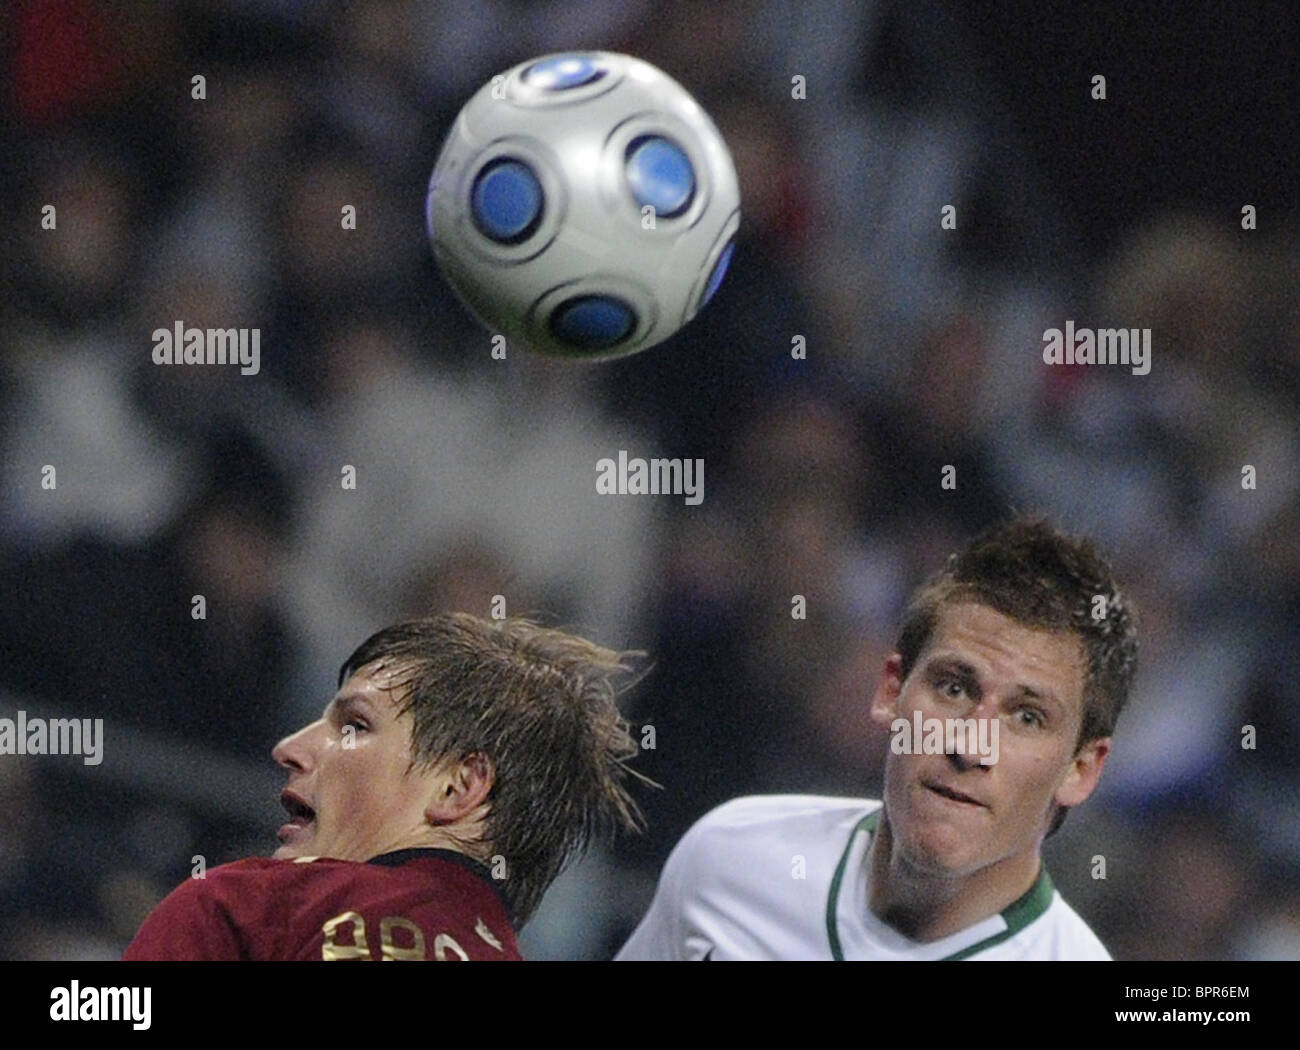 Russia defeats Slovenia 2-1 in WCup playoff 1st leg - Stock Image